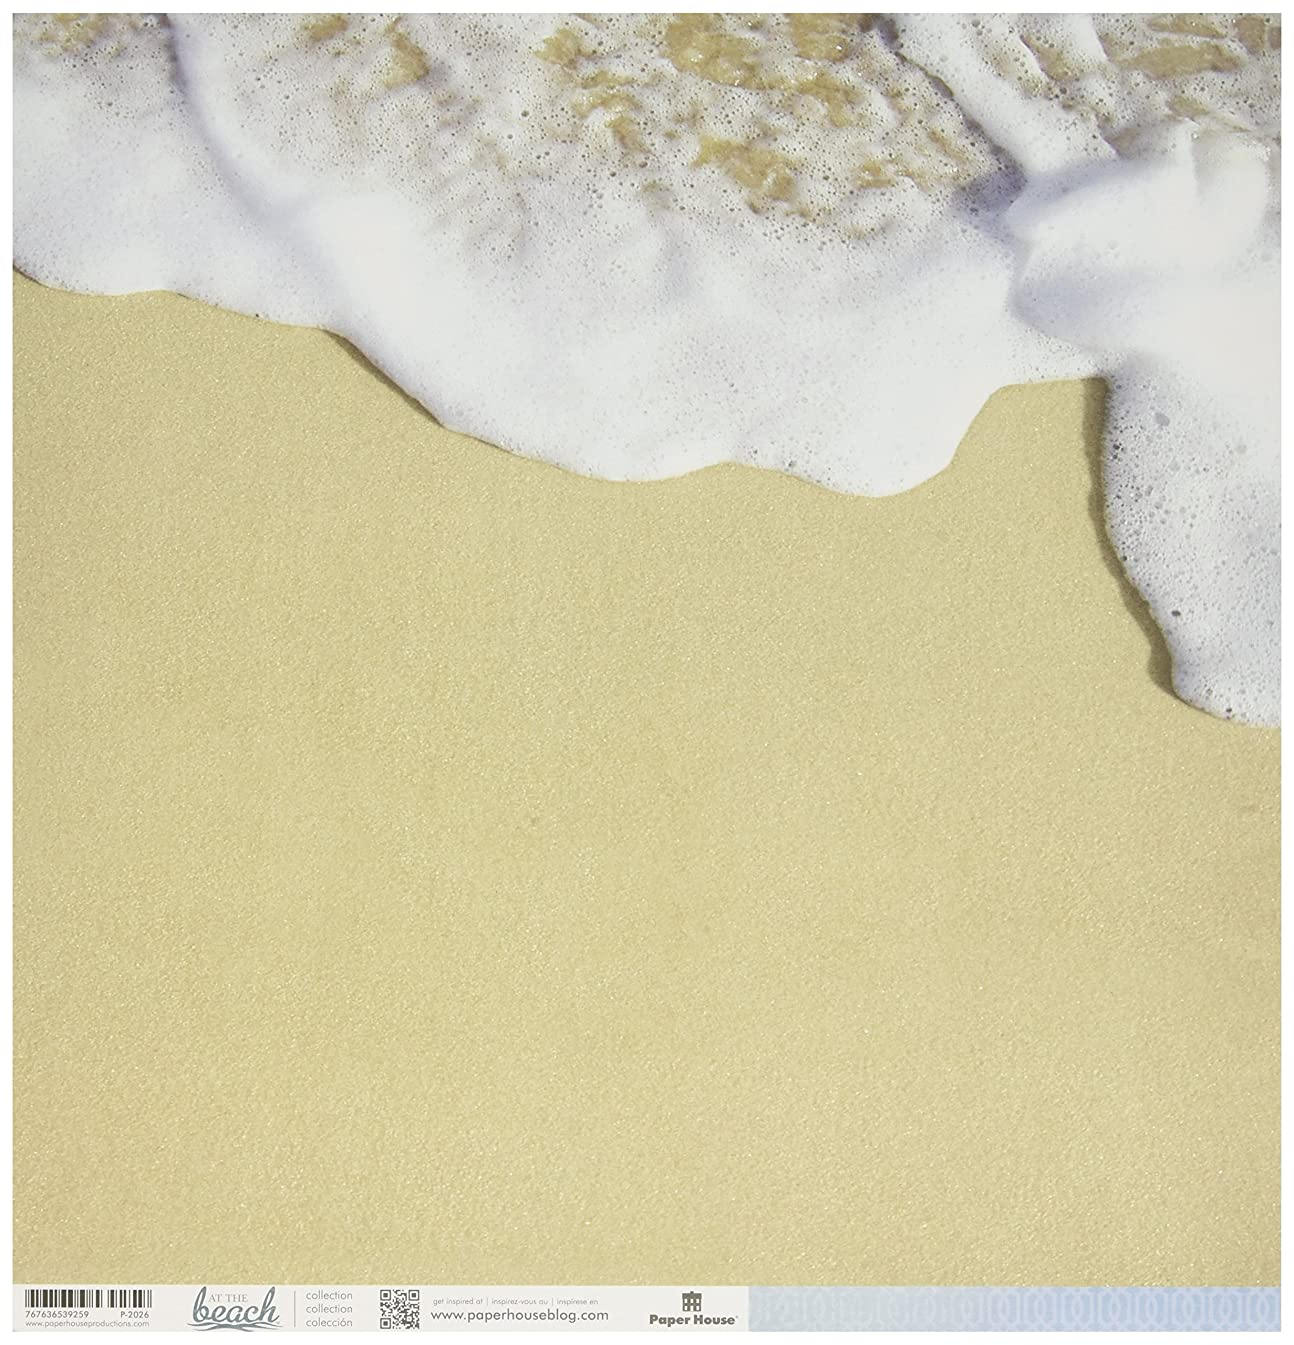 Paper House Productions P-2026E Double Sided Seashore Paper (15 Pack), 12